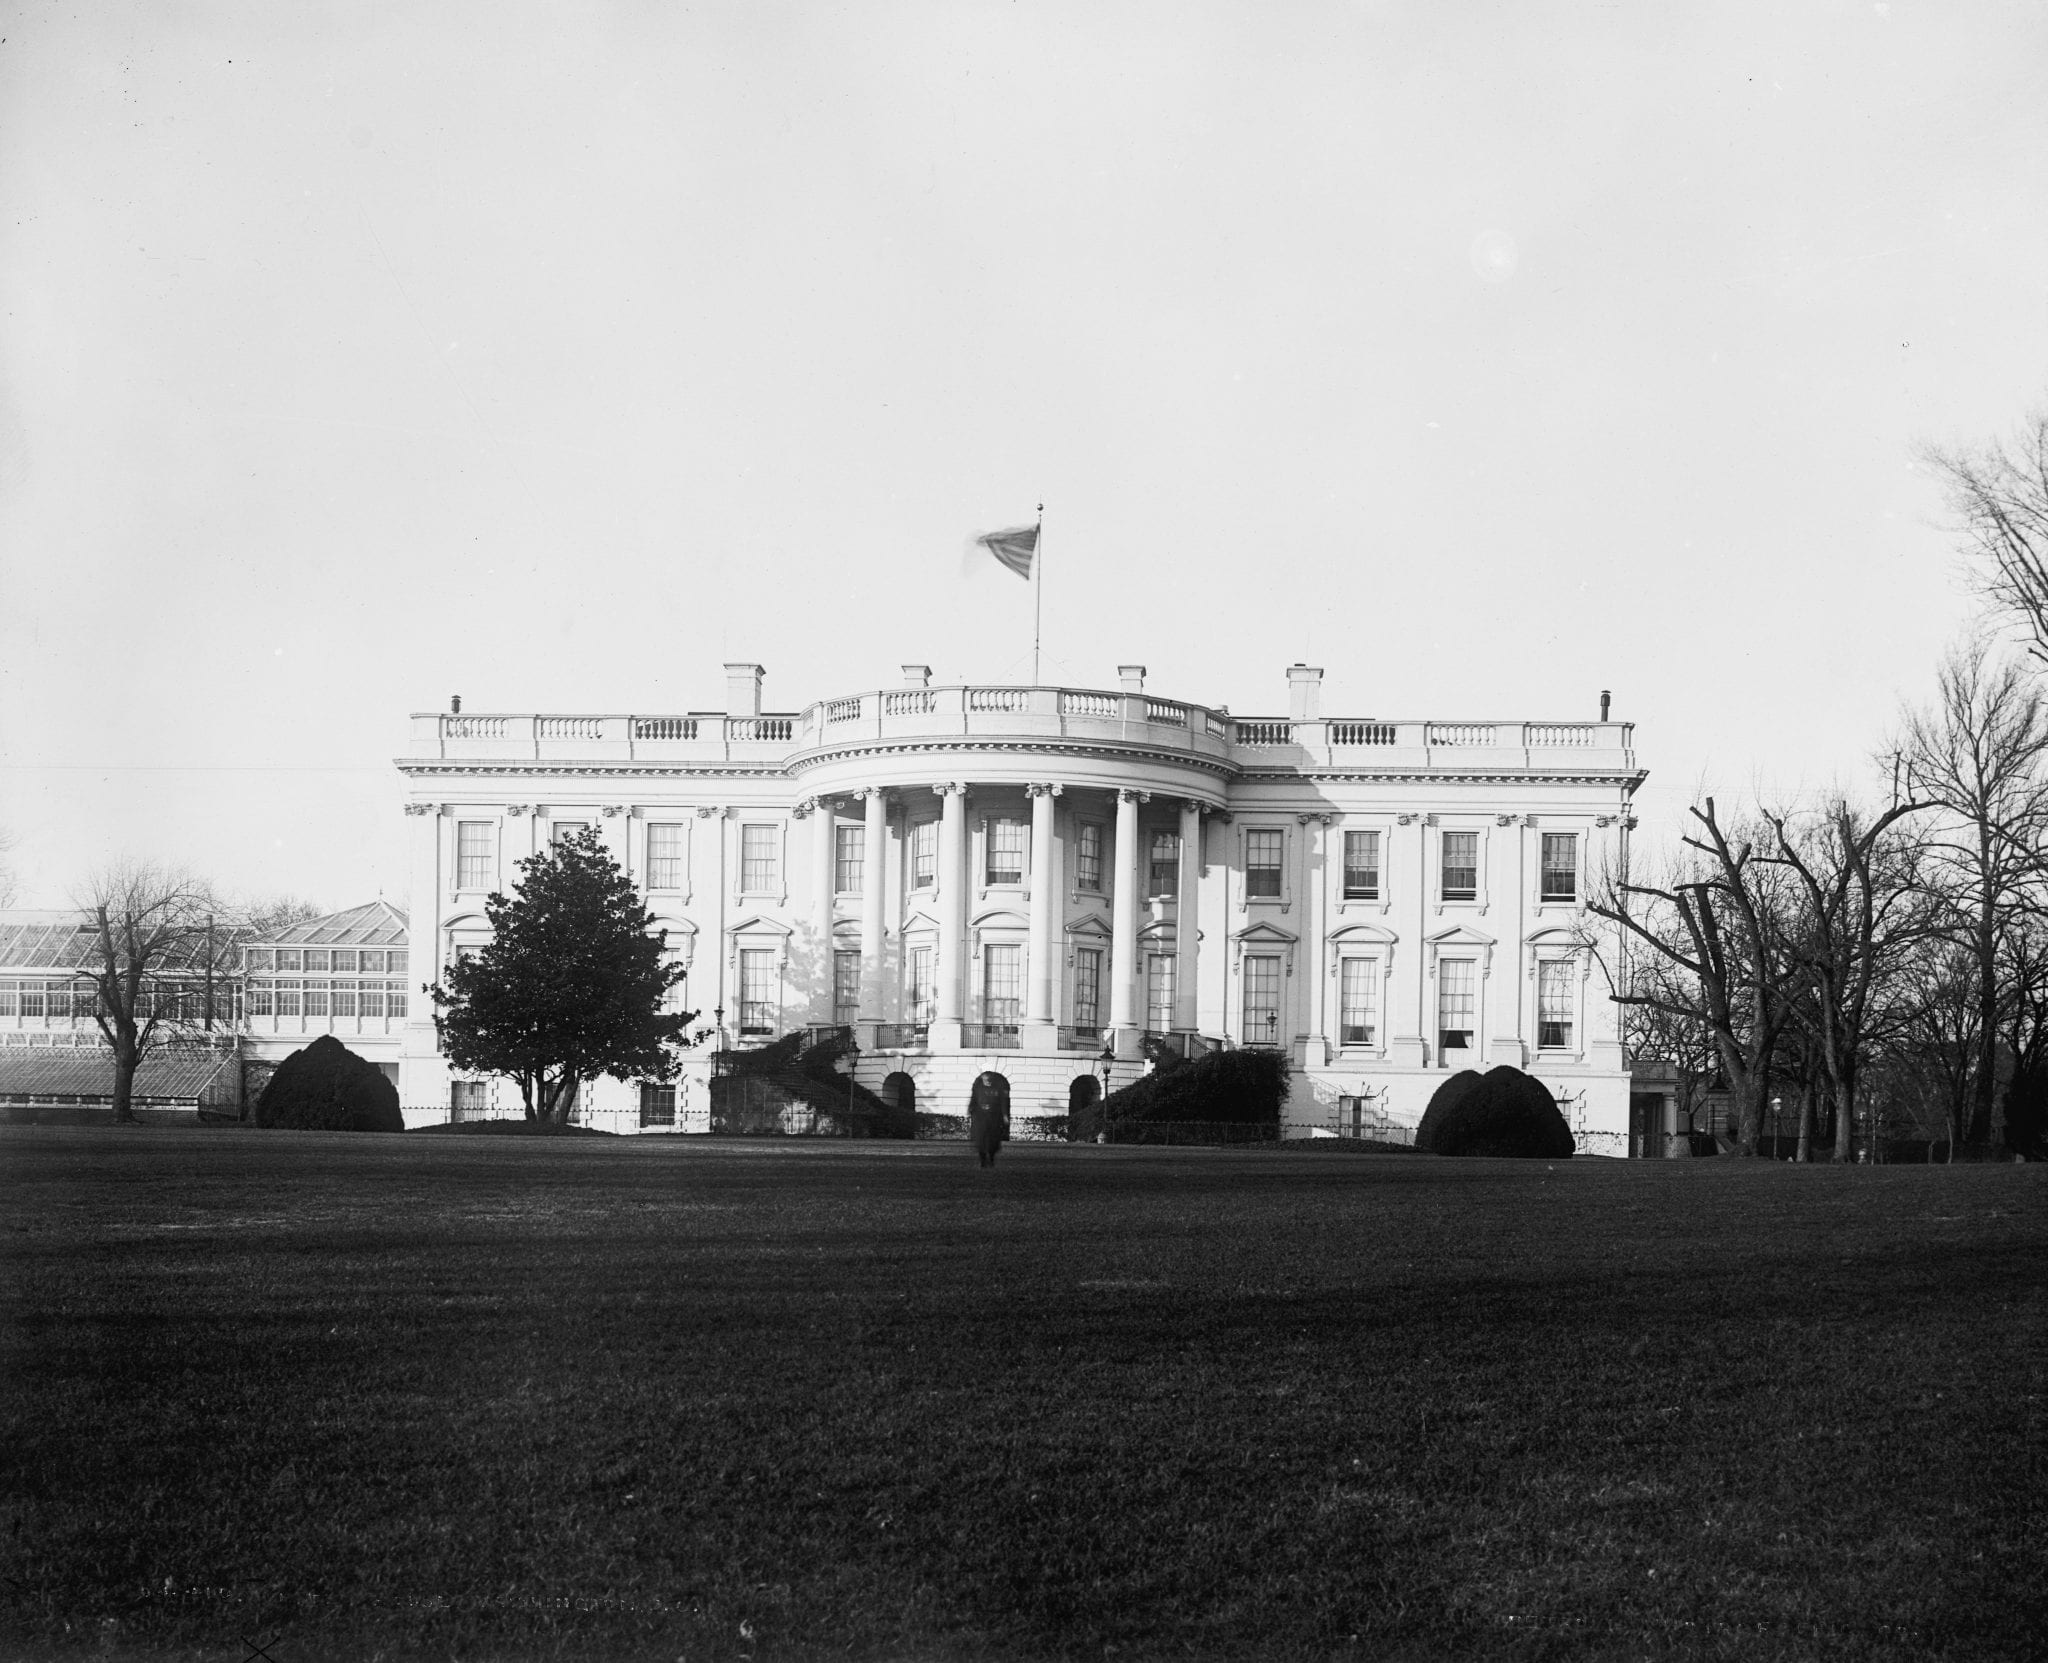 Stunning 1880s Photo of the White House